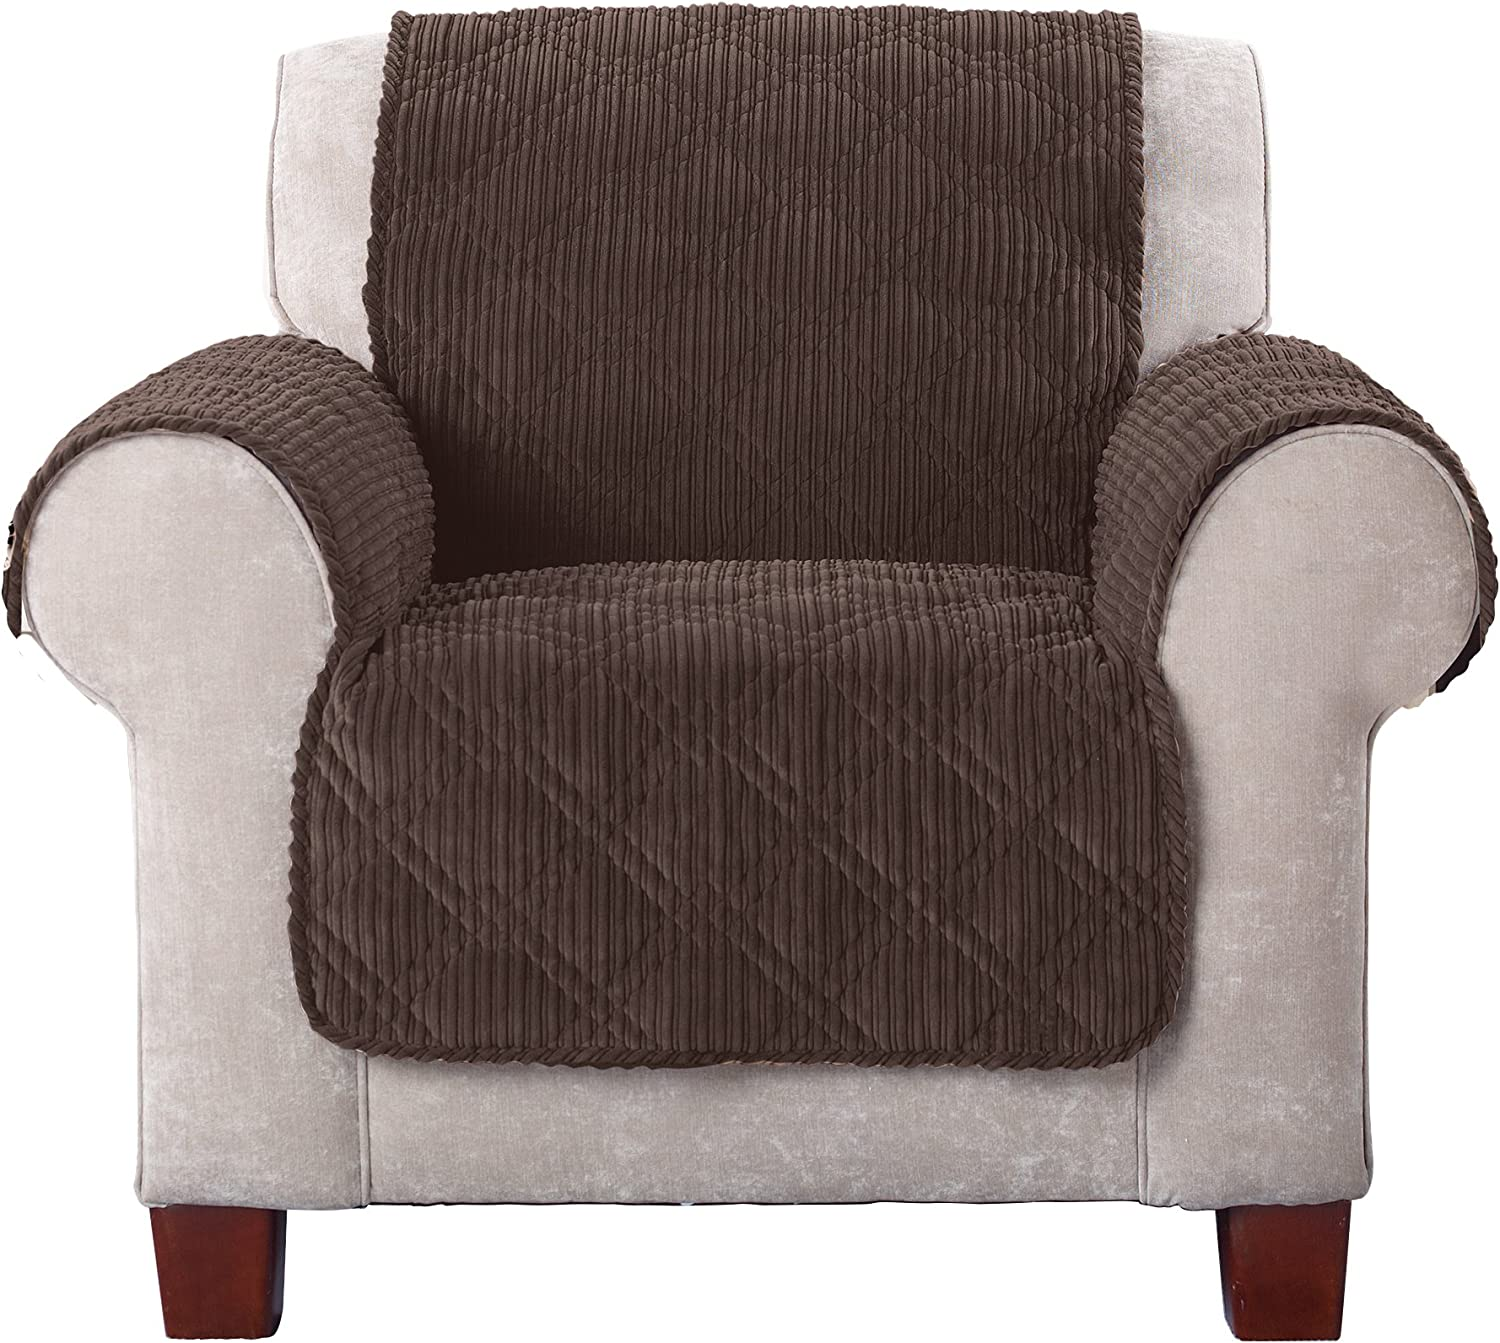 SureFit Wide Whale Chair, Furniture Cover, Chocolate